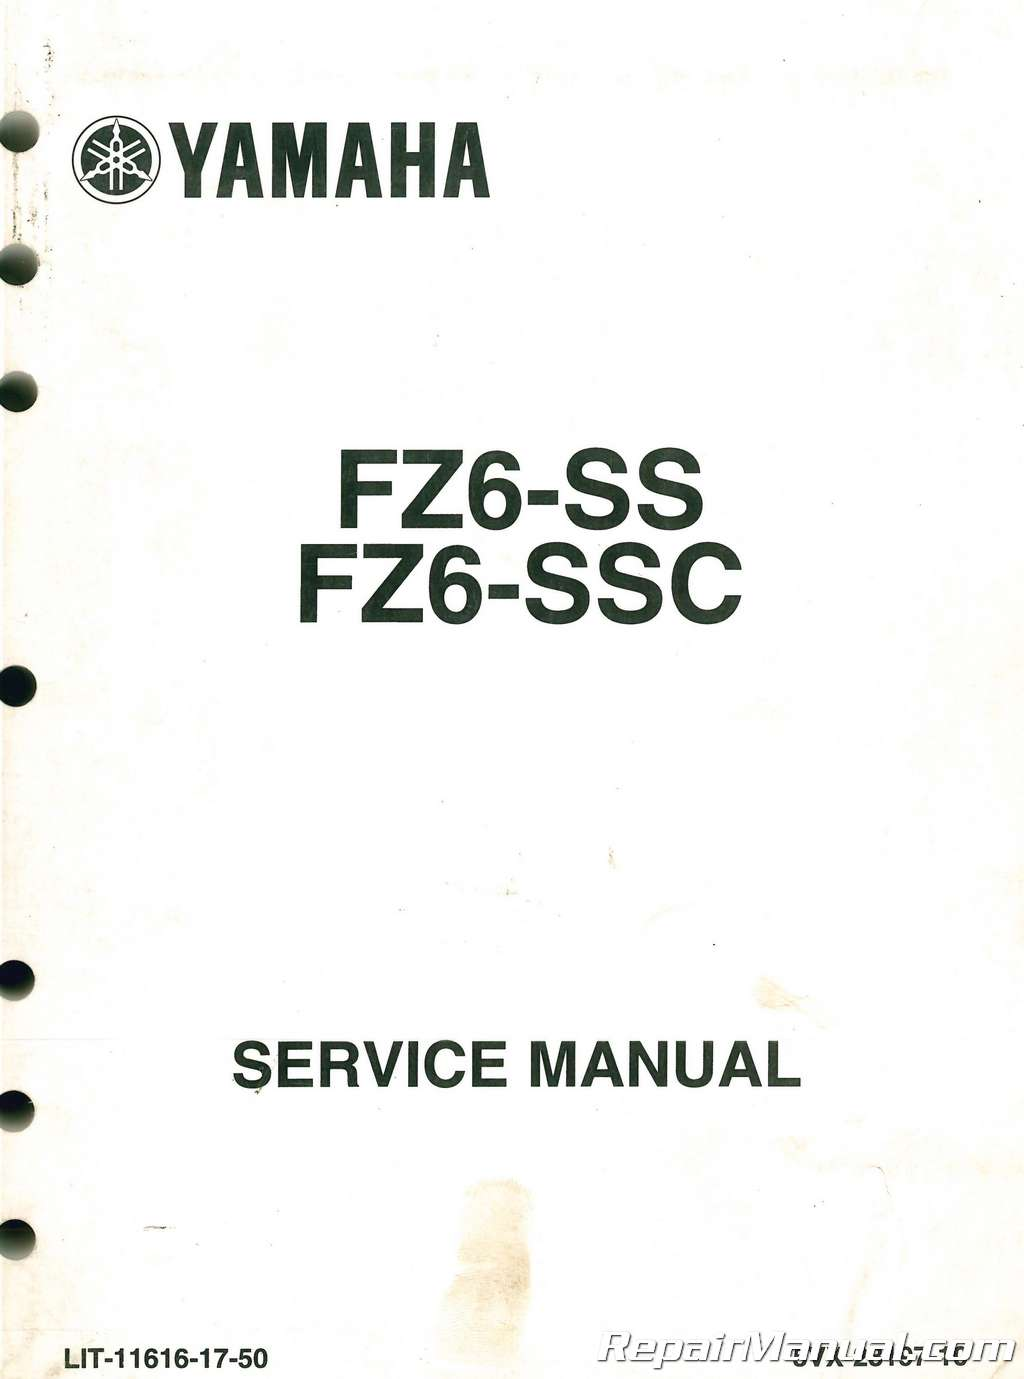 Used 2004-2006 Yamaha FZ6 Motorcycle Service Manual